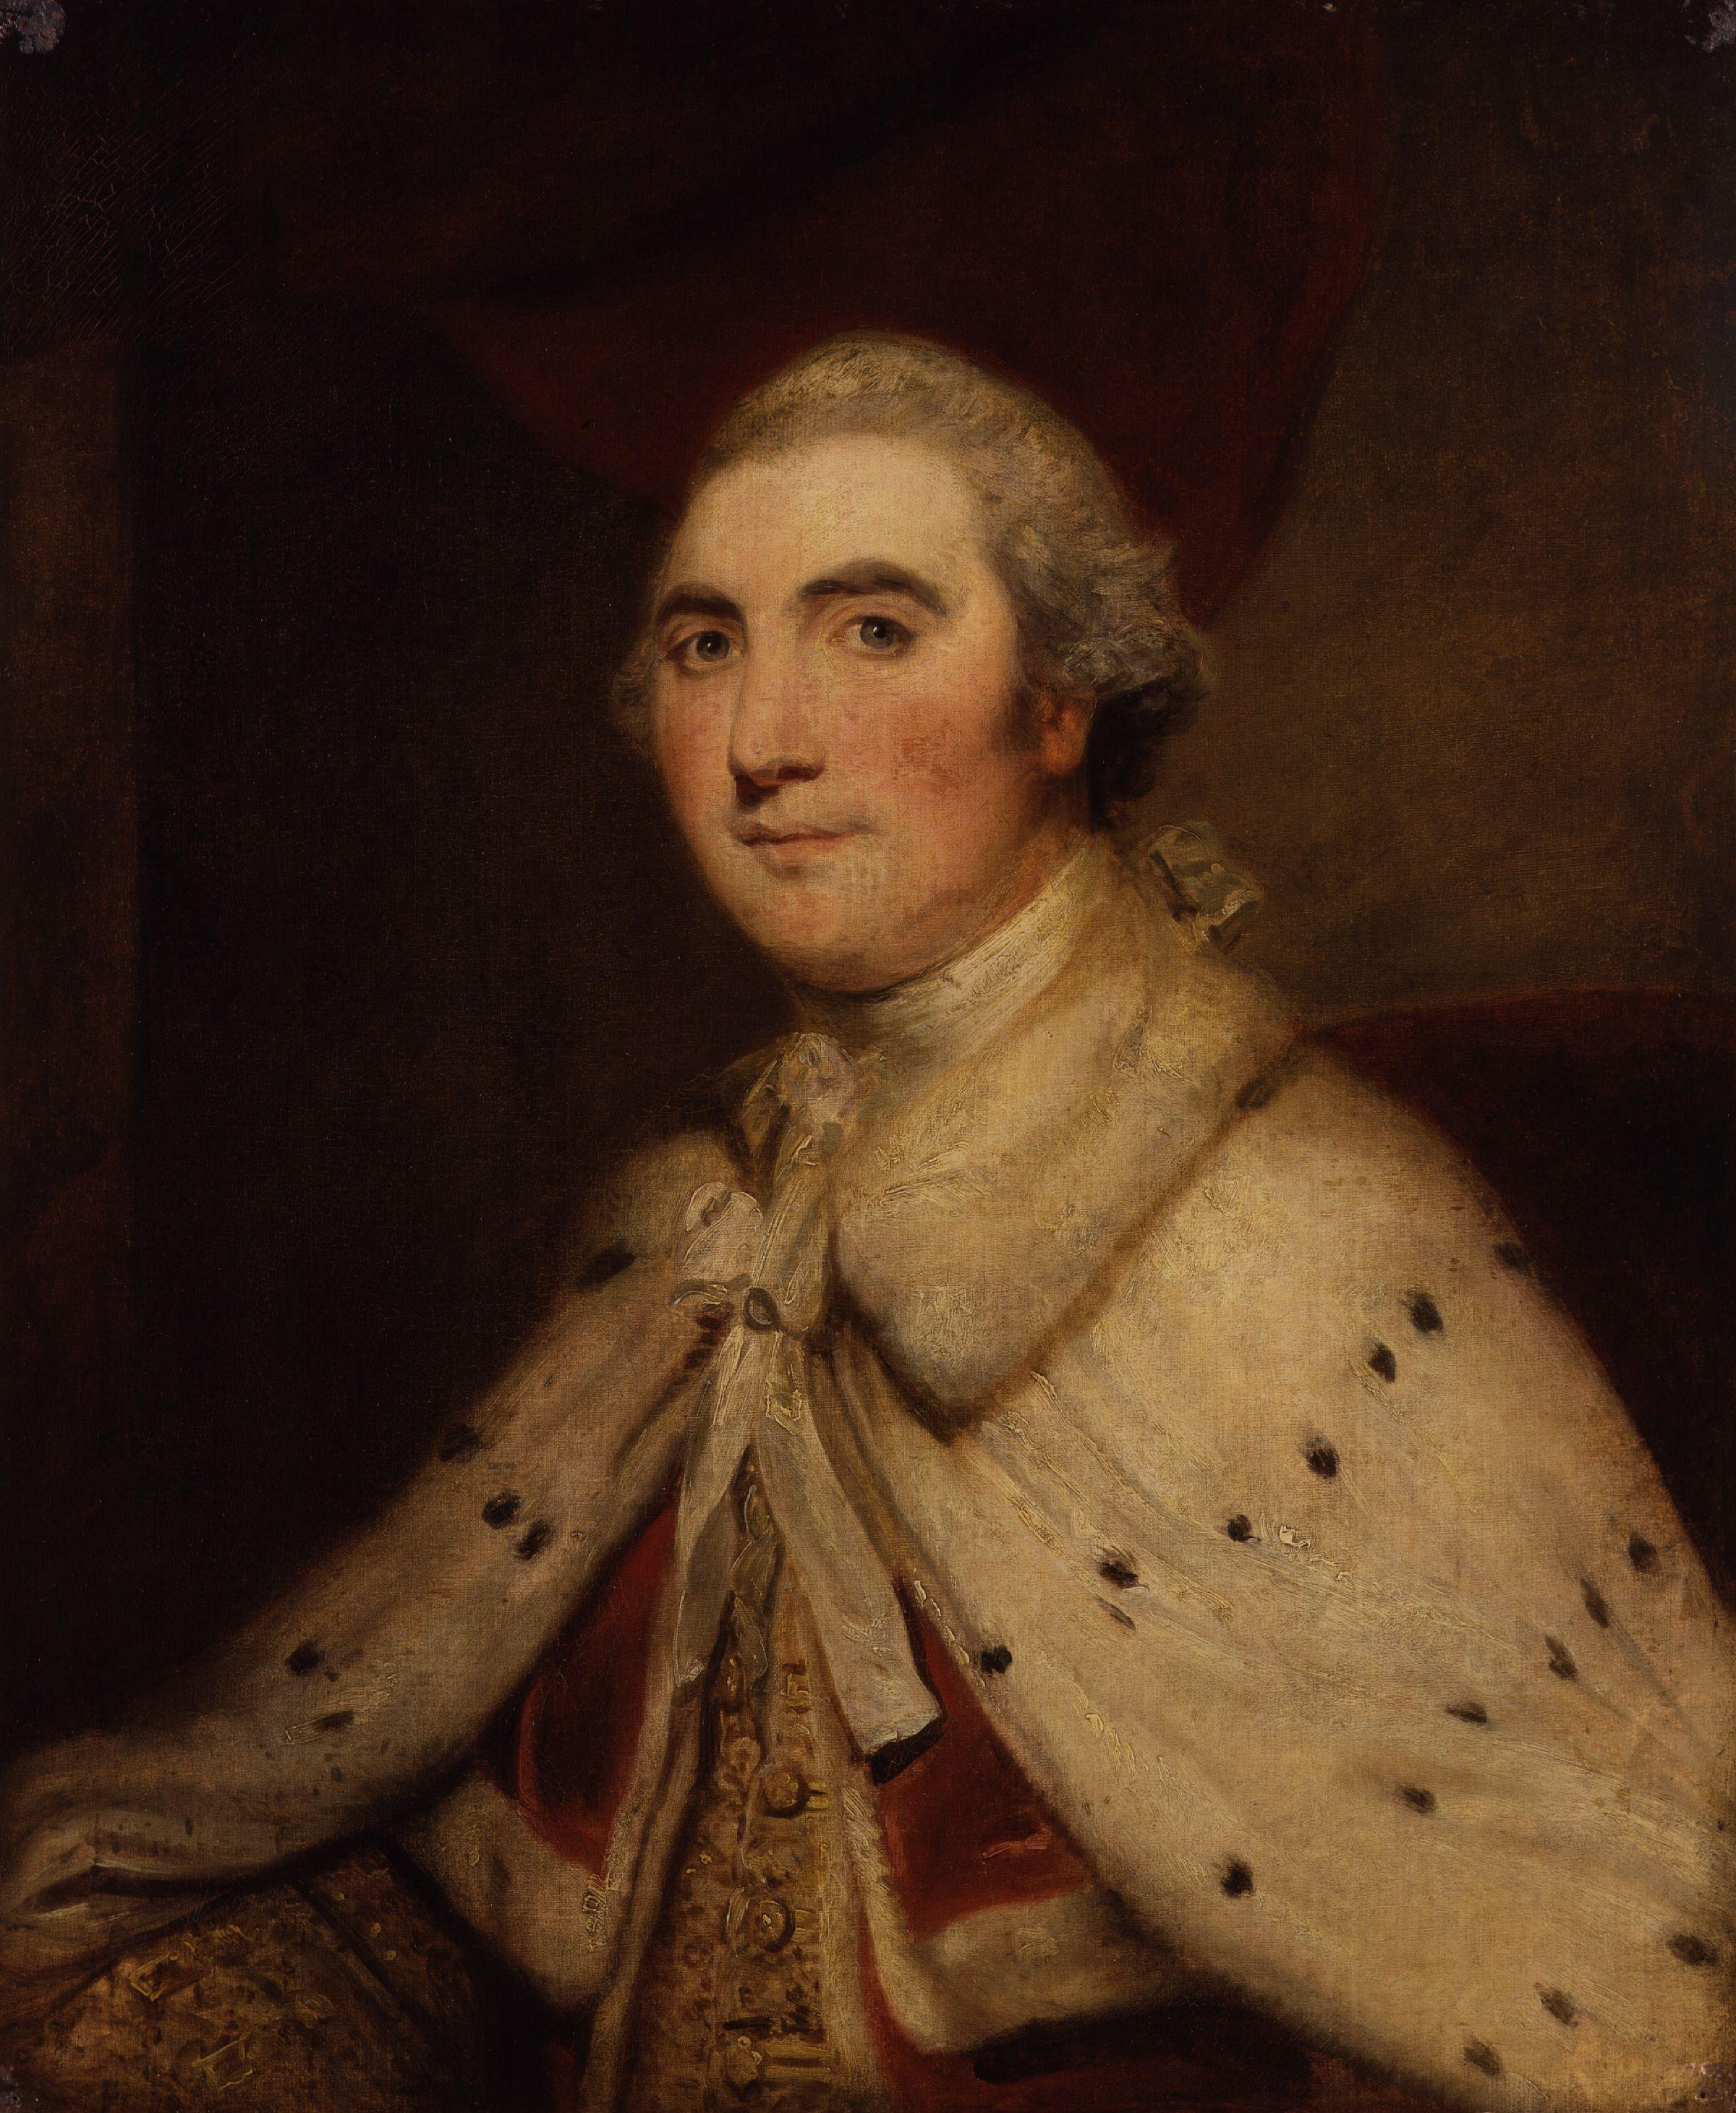 Sir William Petty